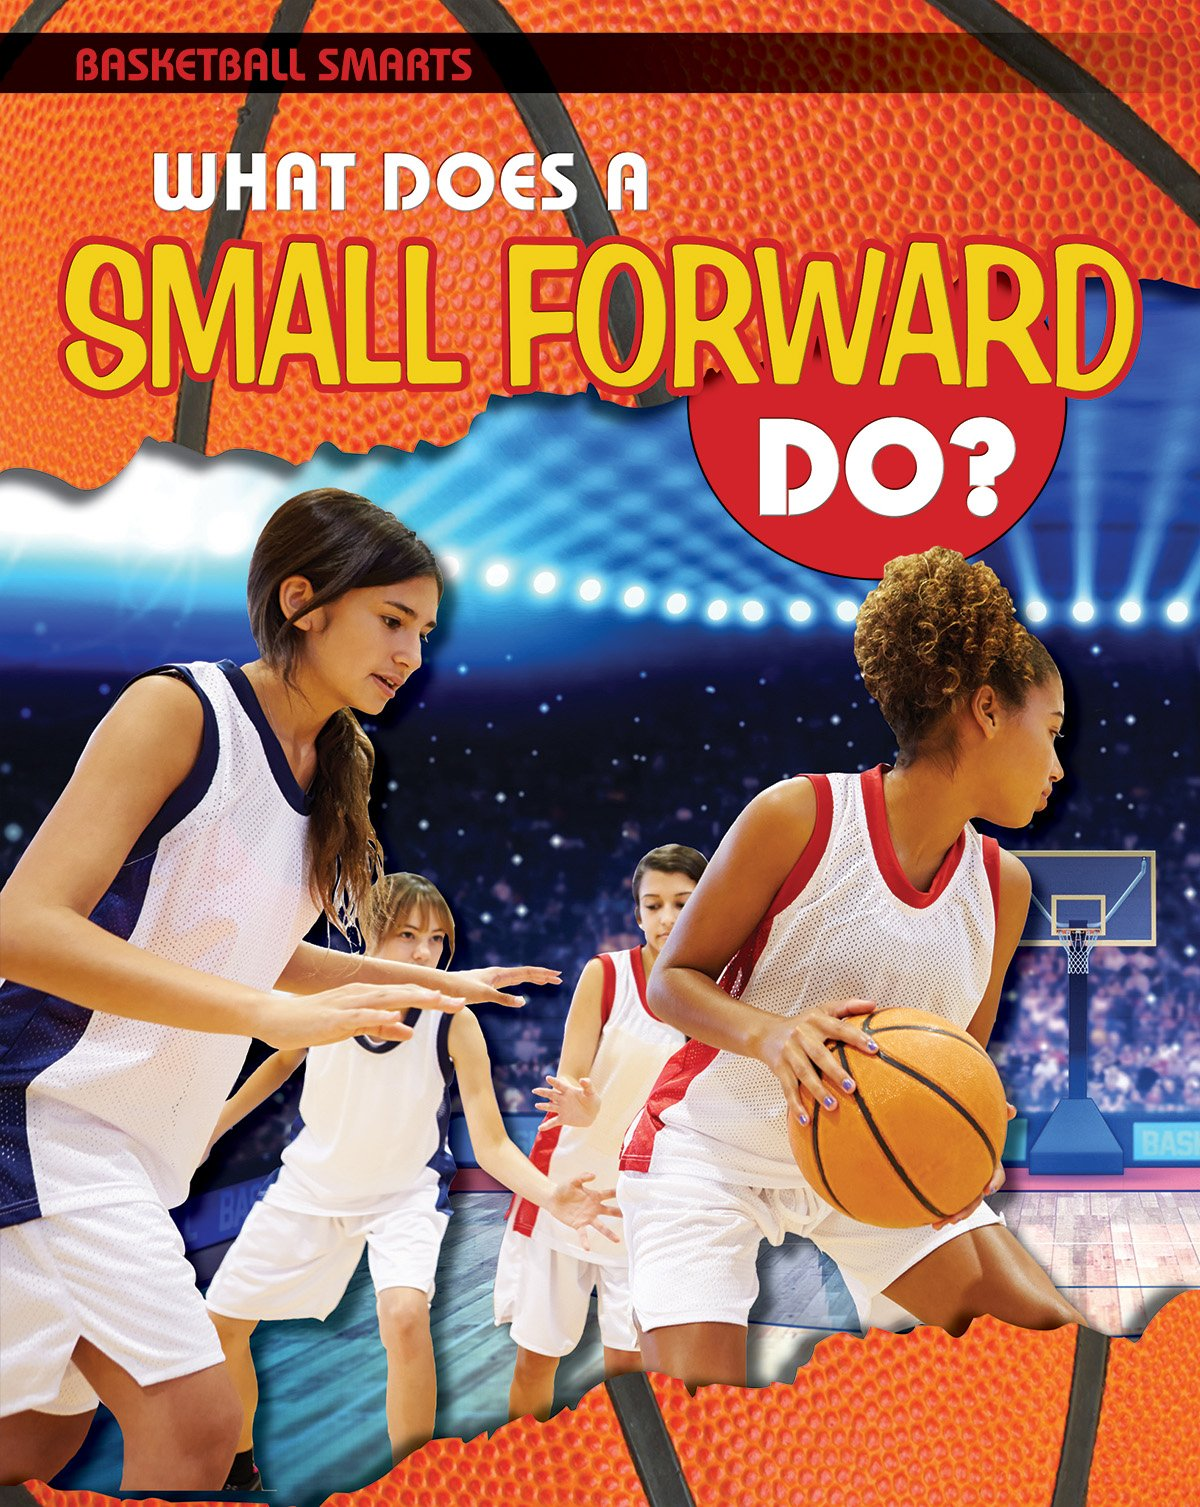 What Does a Small Forward Do? (Basketball Smarts)